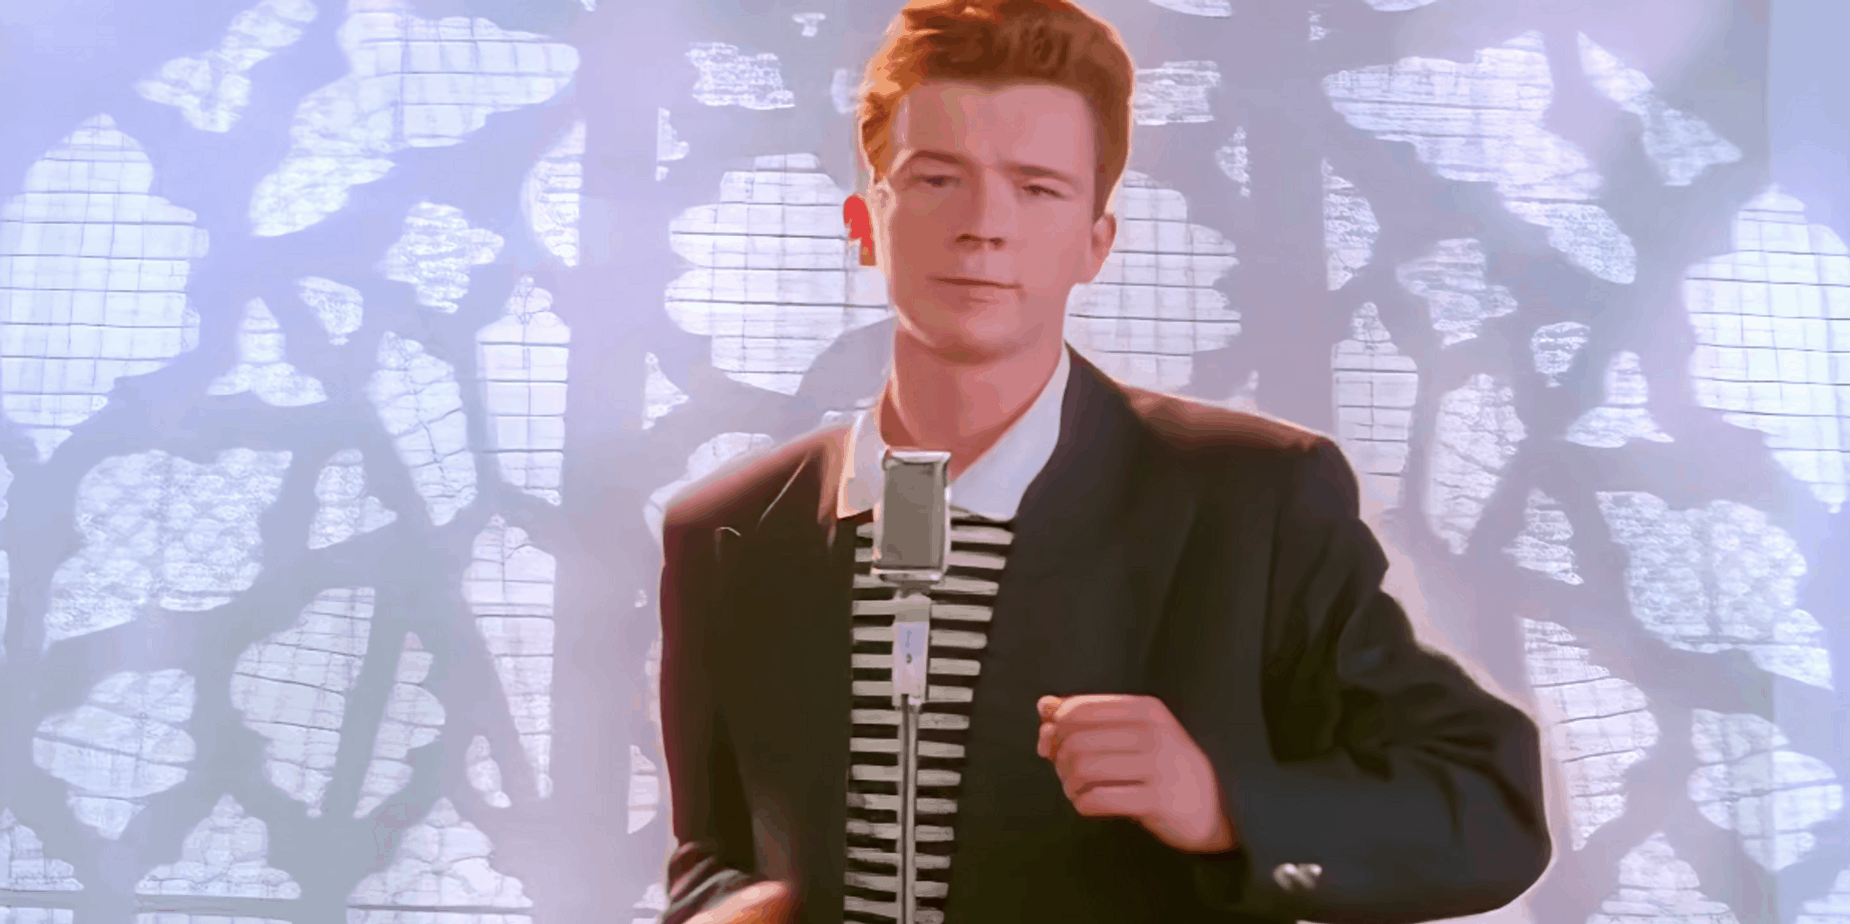 What does it mean to get rick rolled? That crossed 1 Billion Views